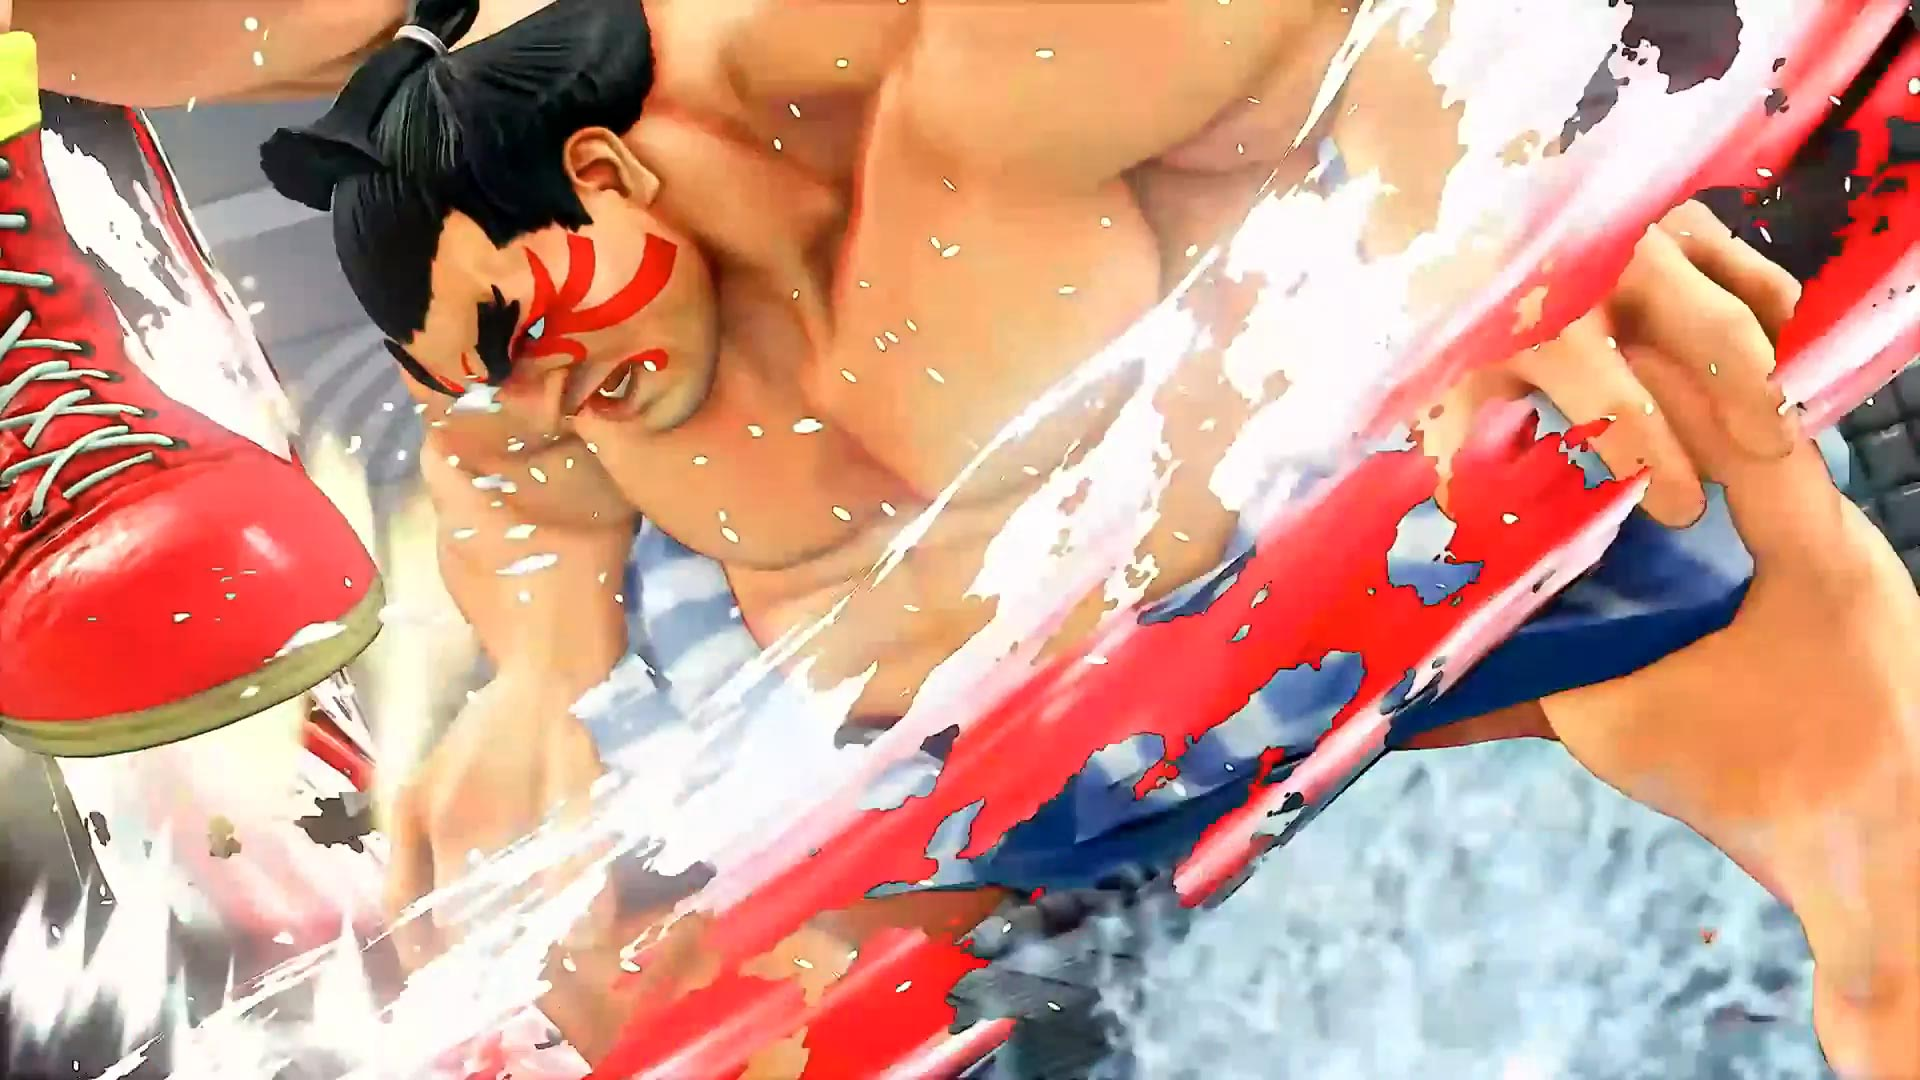 Street Fighter 5 leaked gallery of E. Honda, Lucia and Poison 28 out of 35 image gallery